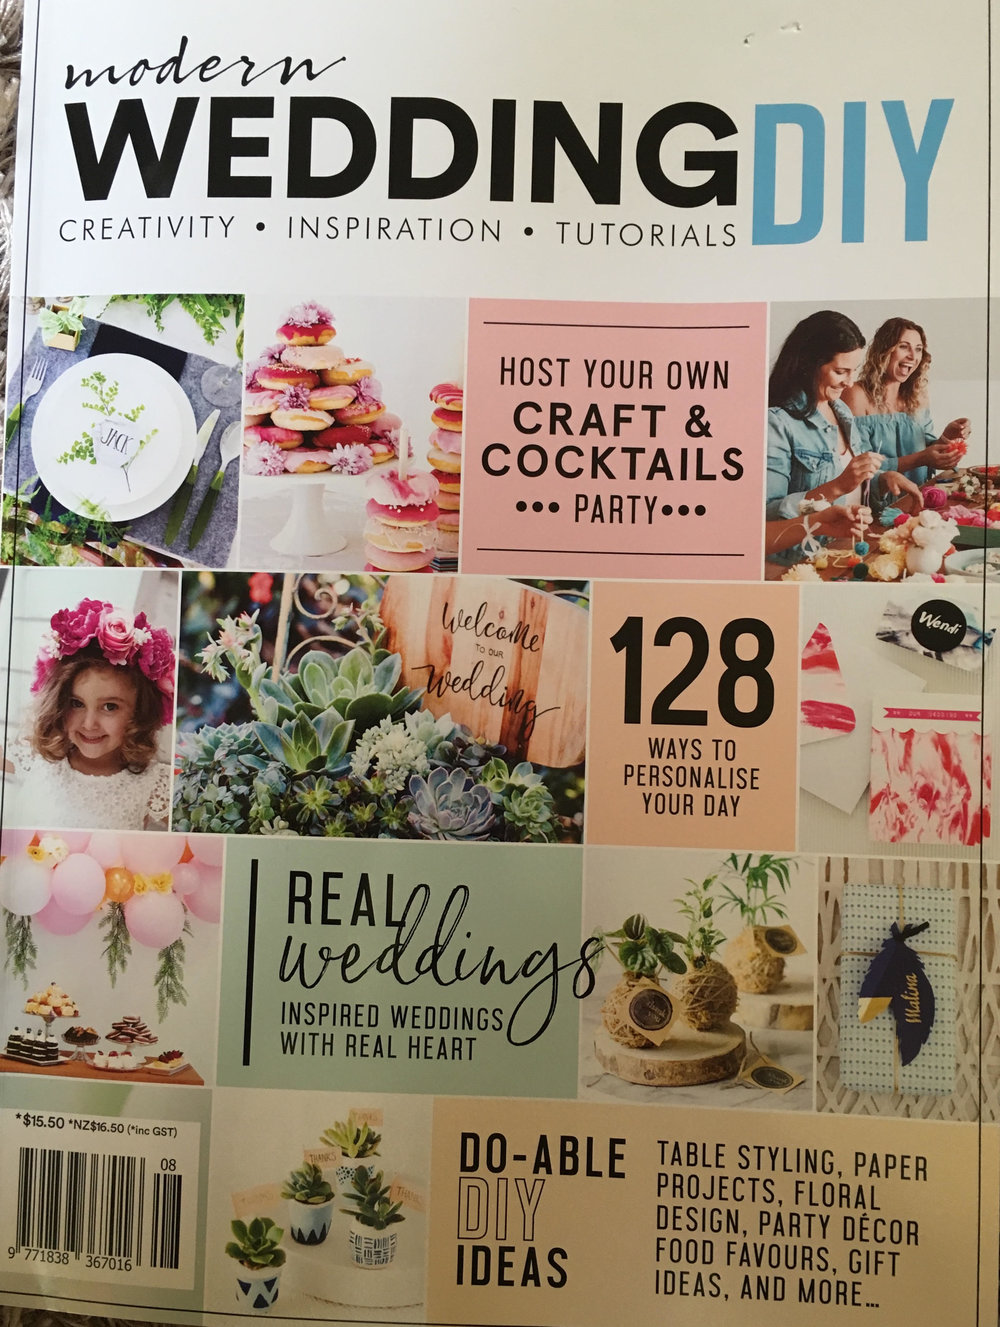 Modern Wedding Magazine - LAFD floral styling featured in a 10 page spread in the latest issue of Modern Wedding DIY. Collaboration with Going to Gracelands at their stunning venue in Forresters beach.